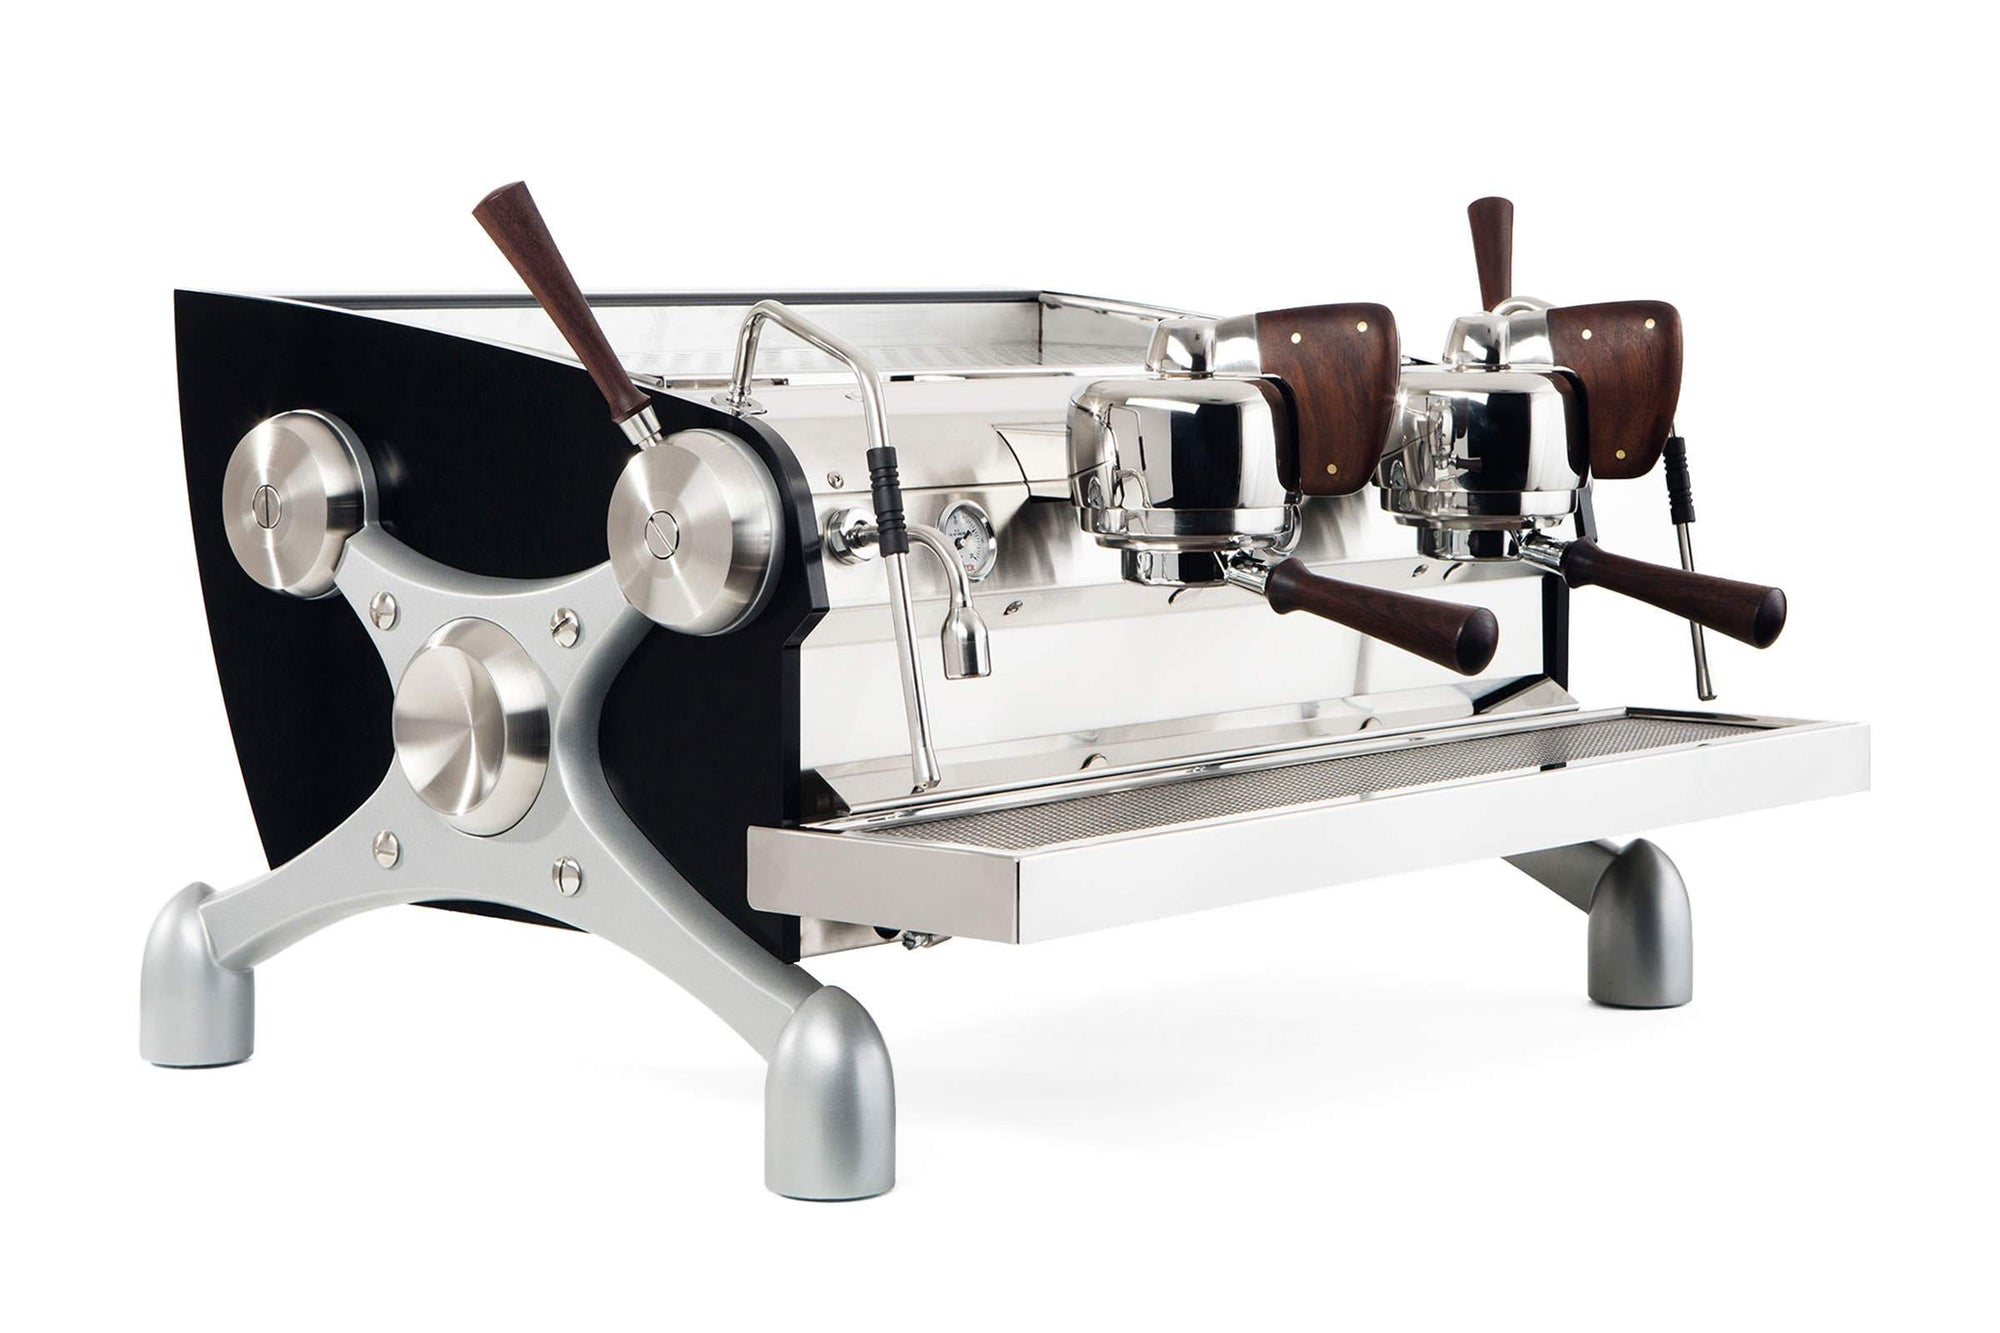 Slayer Espresso 2-Group